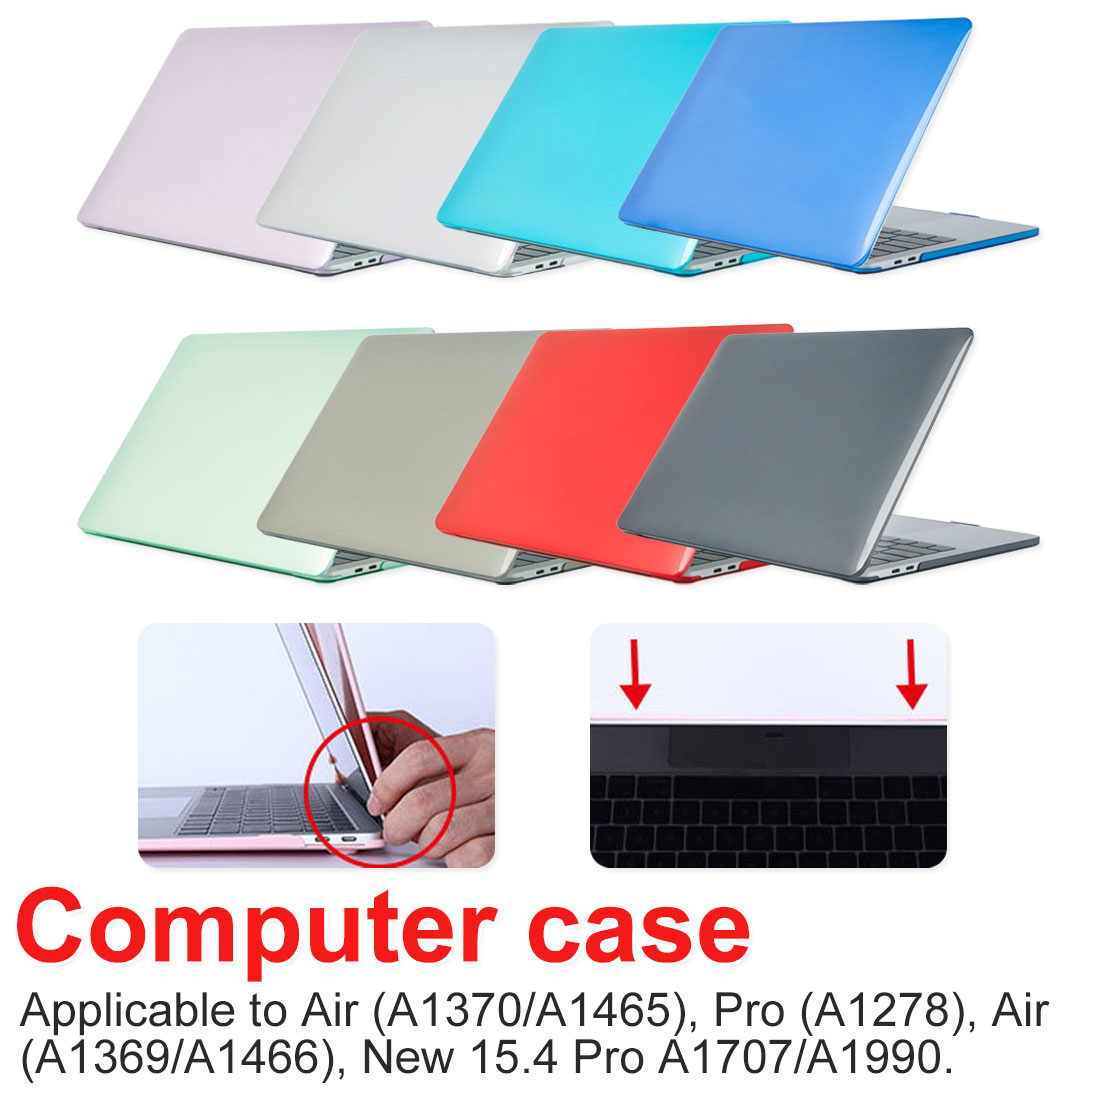 Hot sale Crystal Transparent Case waterproof For Macbook Pro Air 11 12 13 15 For Mac Air 13 New pro 13 15 Laptop Cover shell image